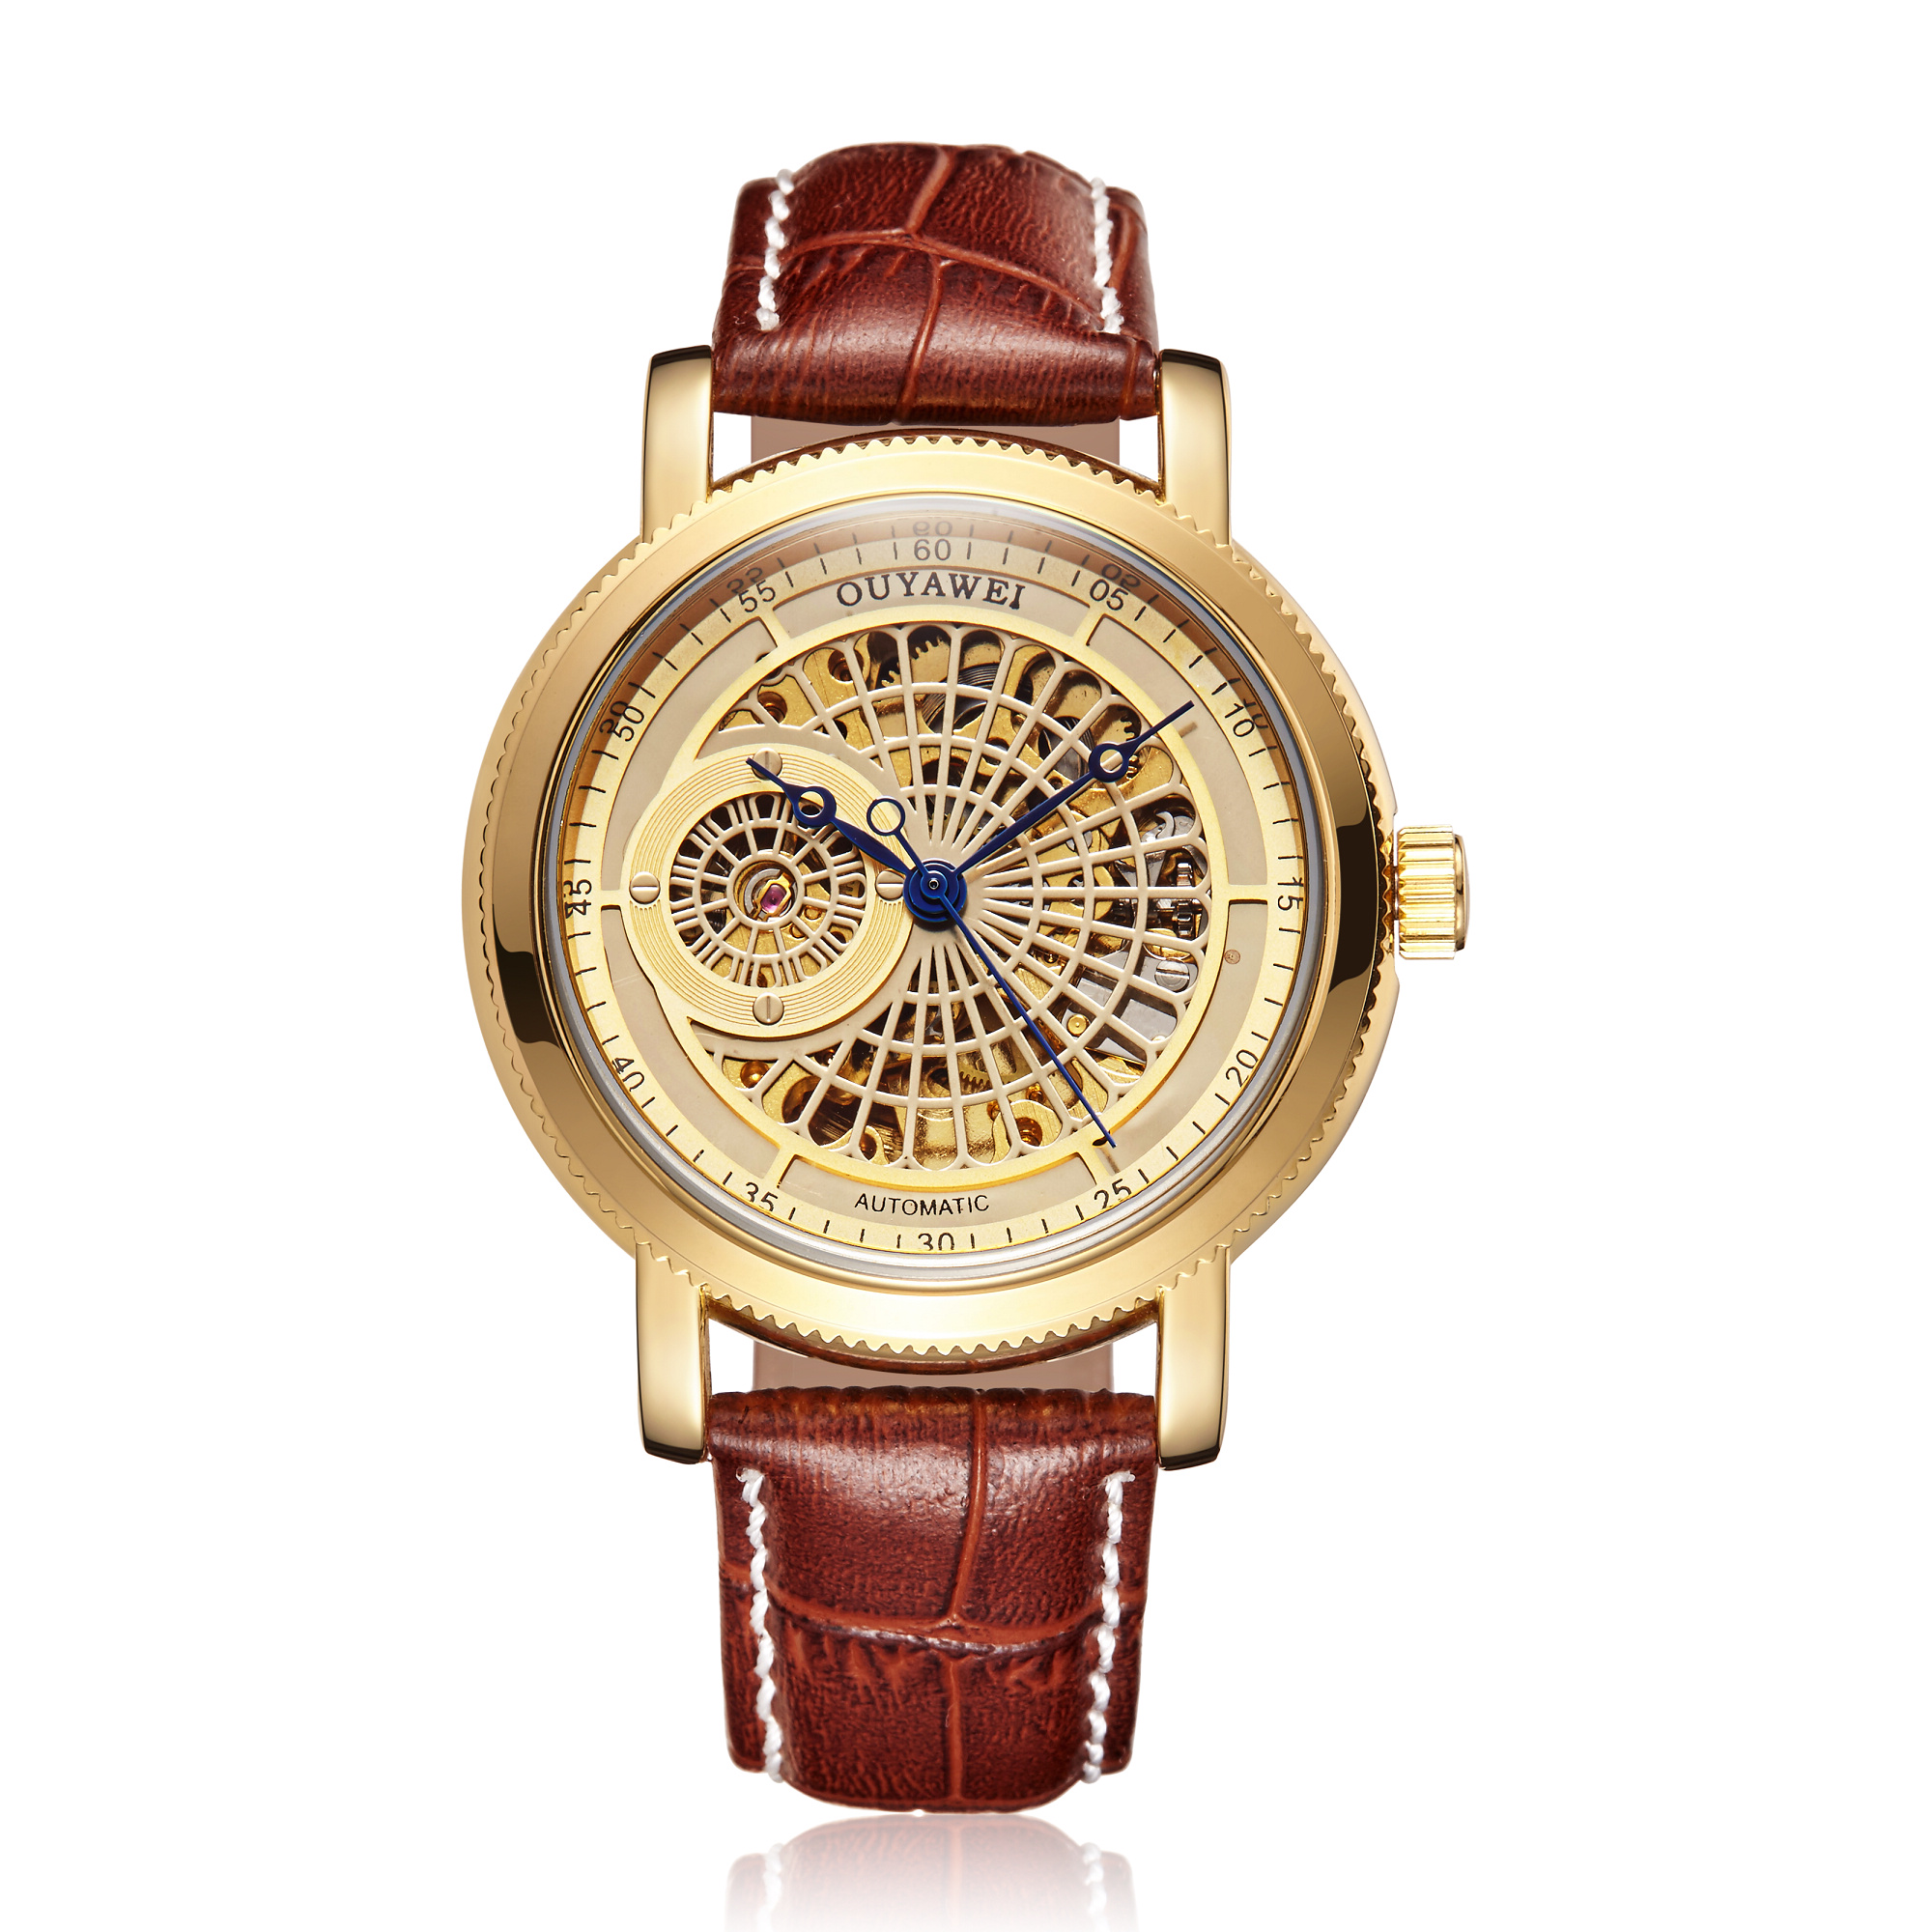 Hee040ad5fbe5433bbea3e80e6e31c499a Mechanical Gold Watch Luxury Brand Self-winding